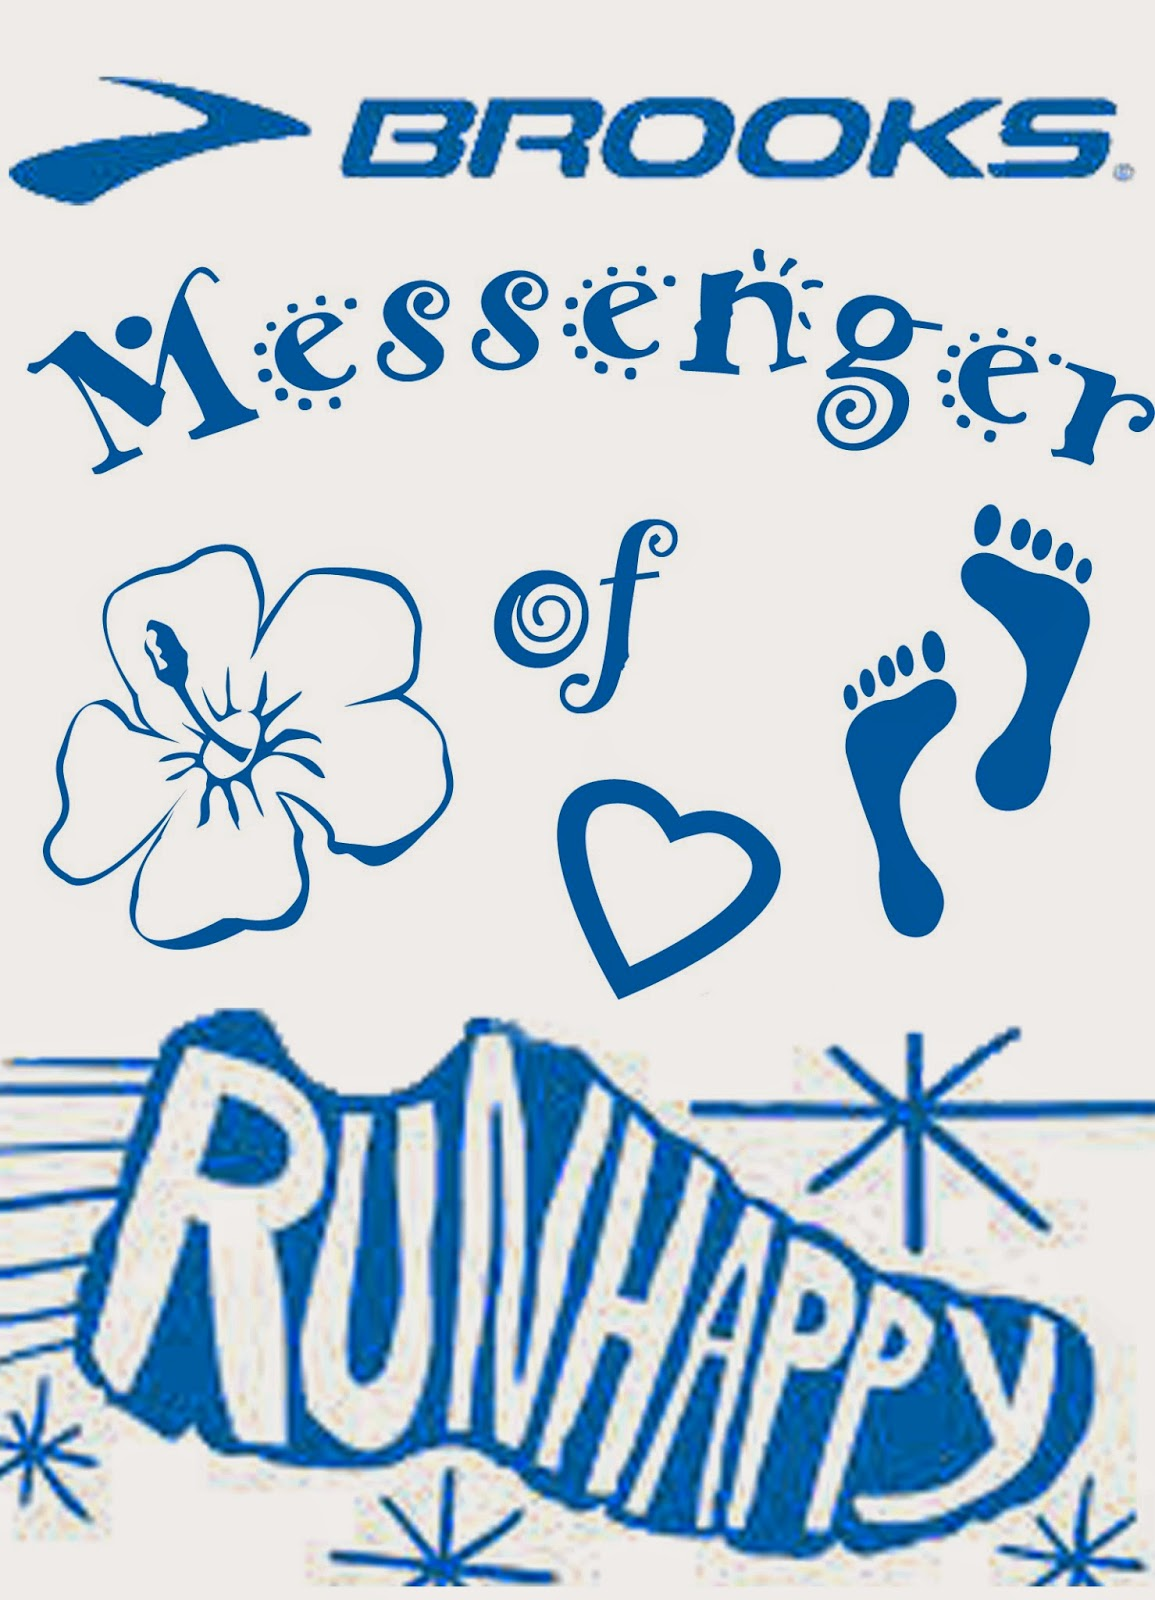 Brooks Messenger of Run Happy